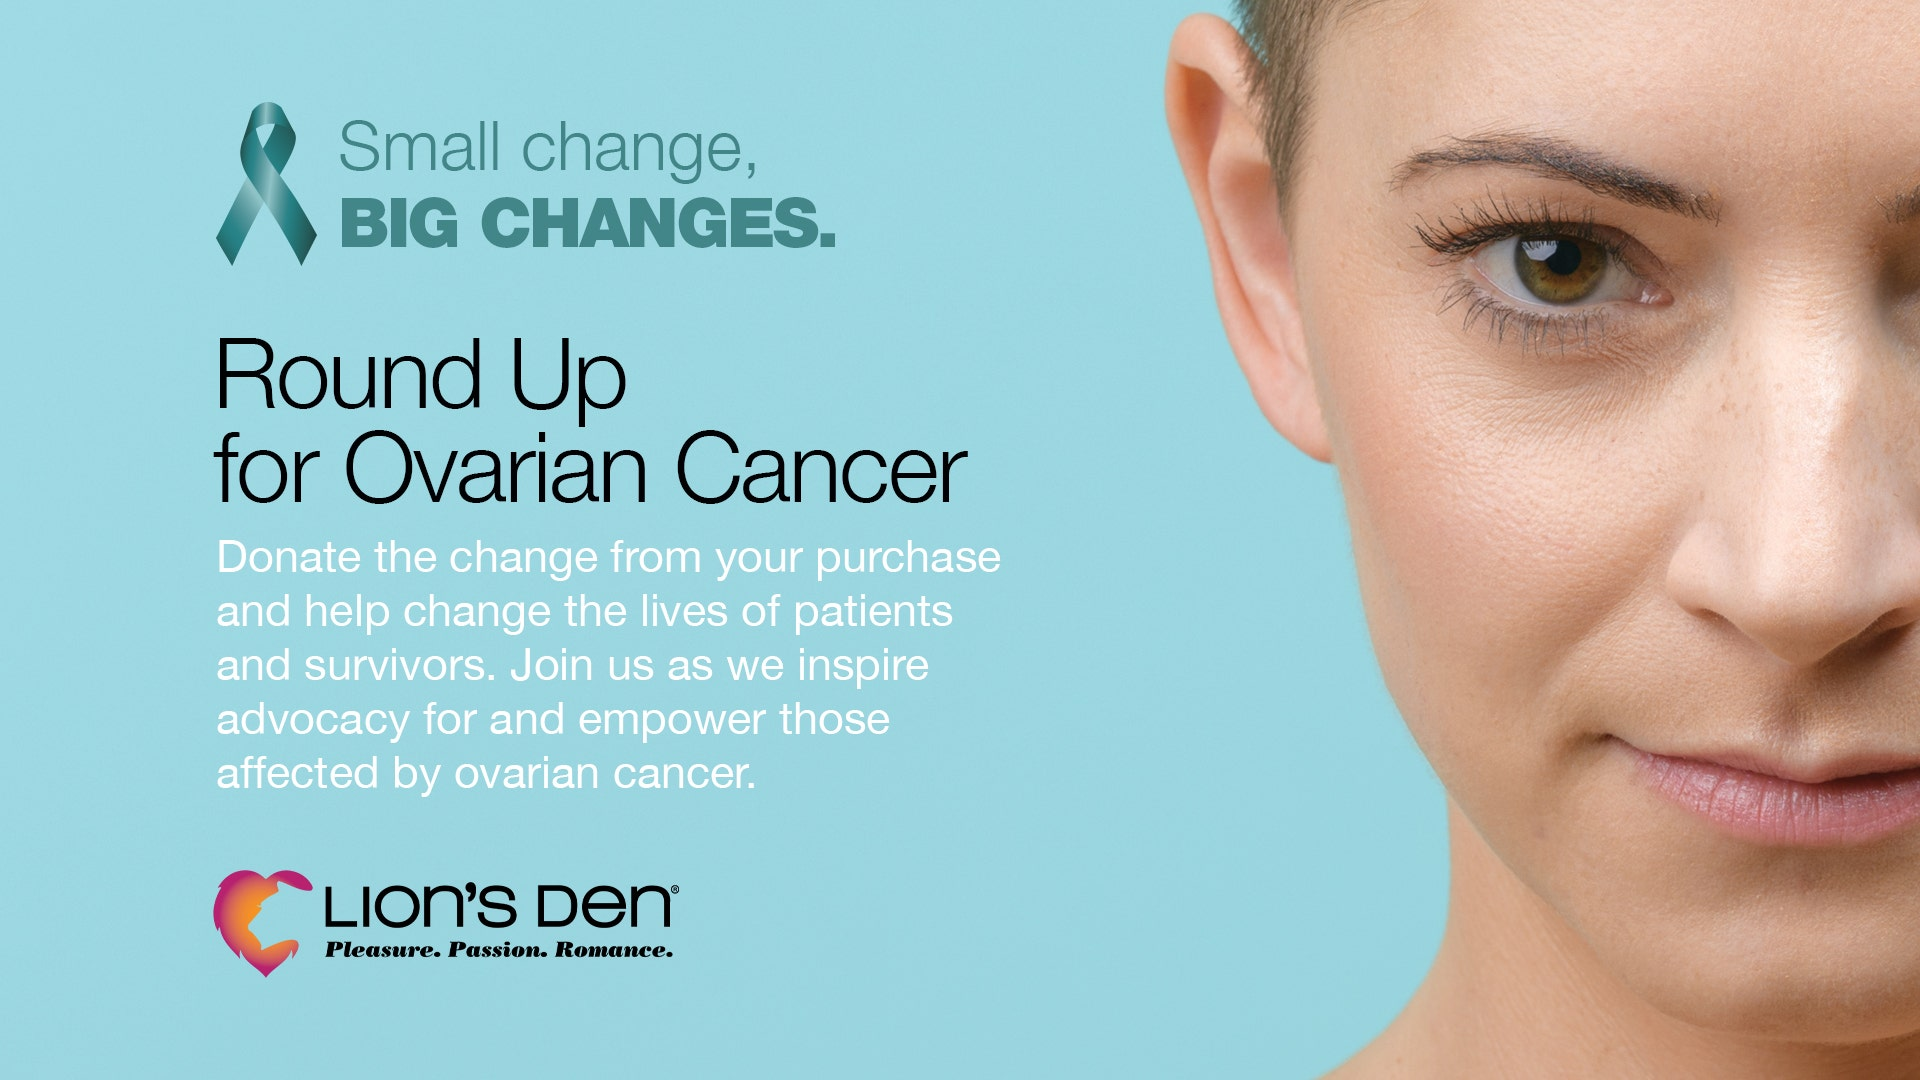 Round up for Ovarian Cancer